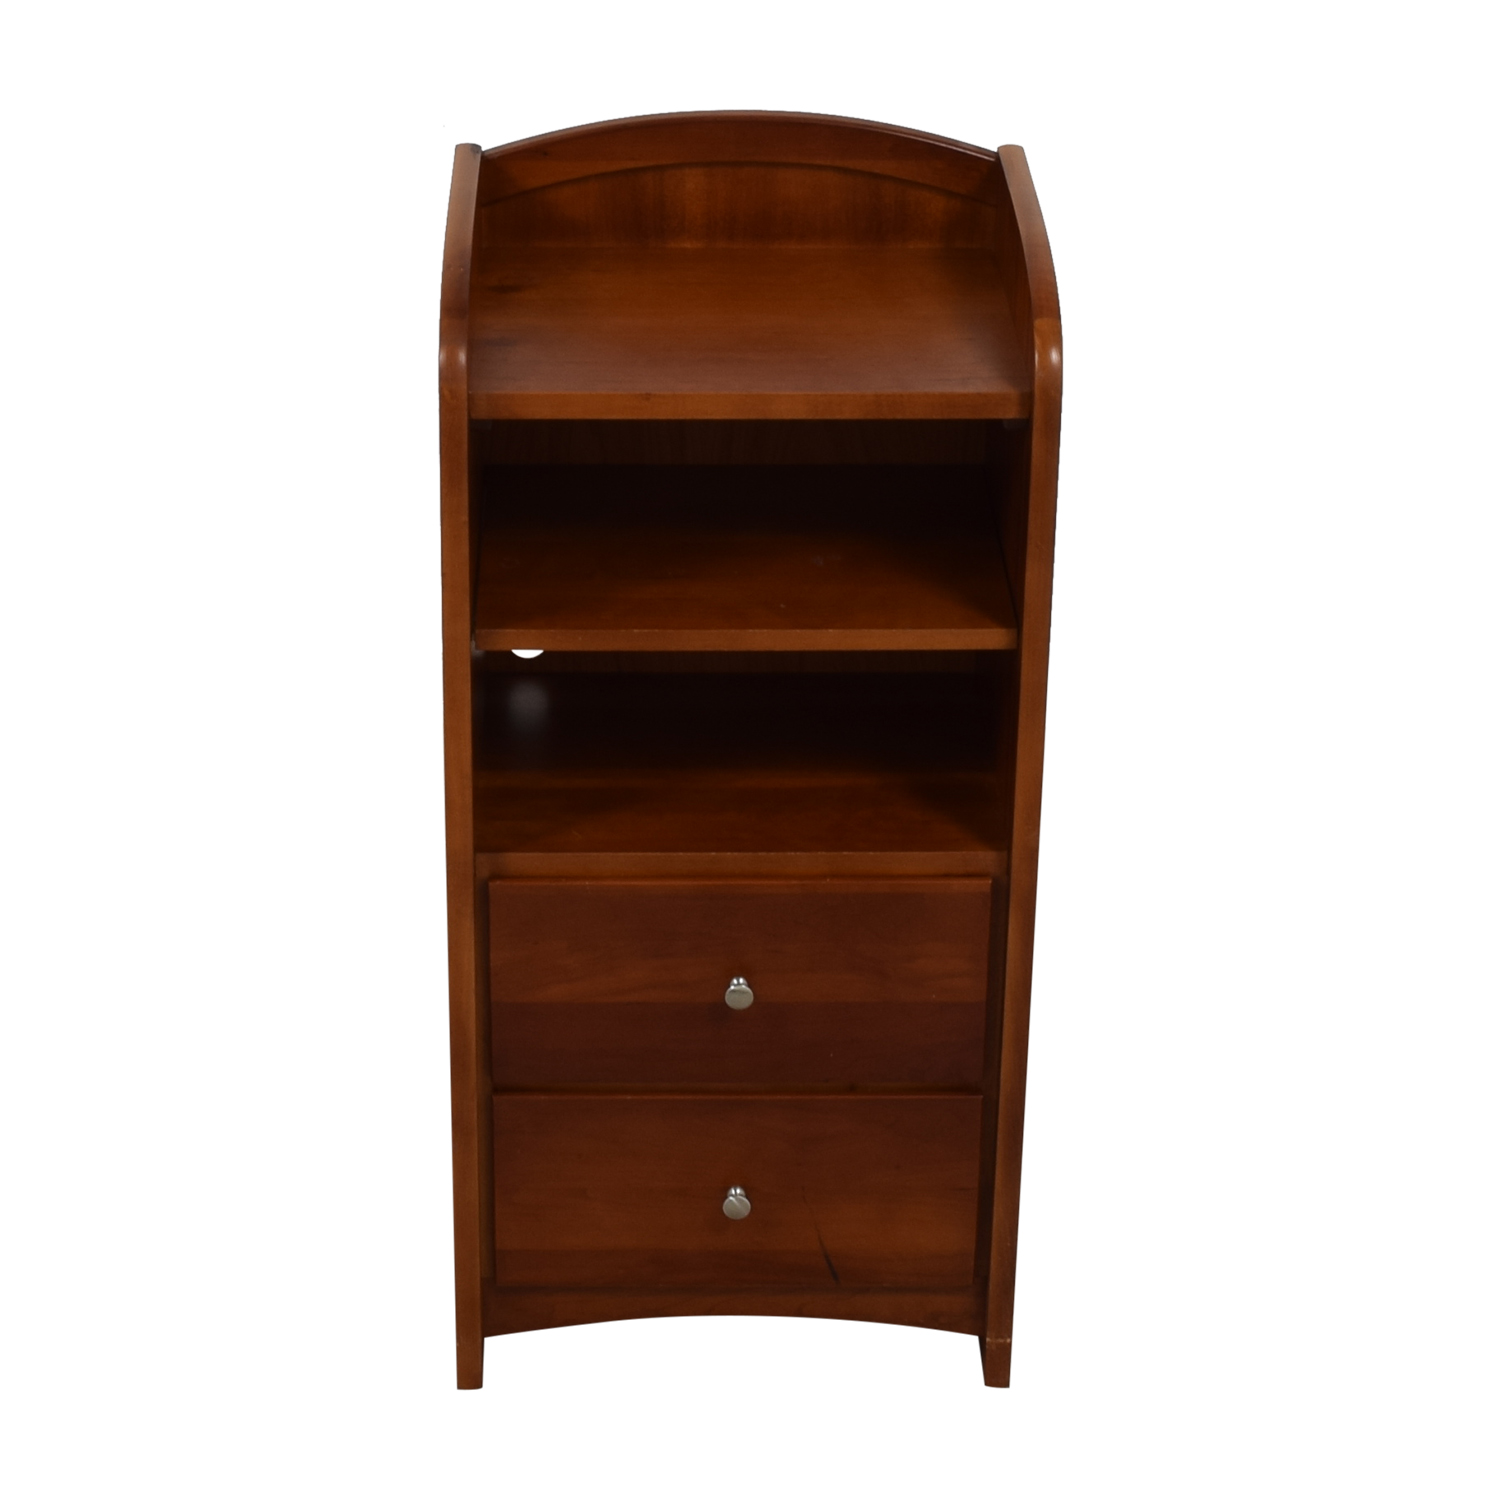 Stanley Furniture Stanley Furniture Young America Collection Short Cabinet Storage